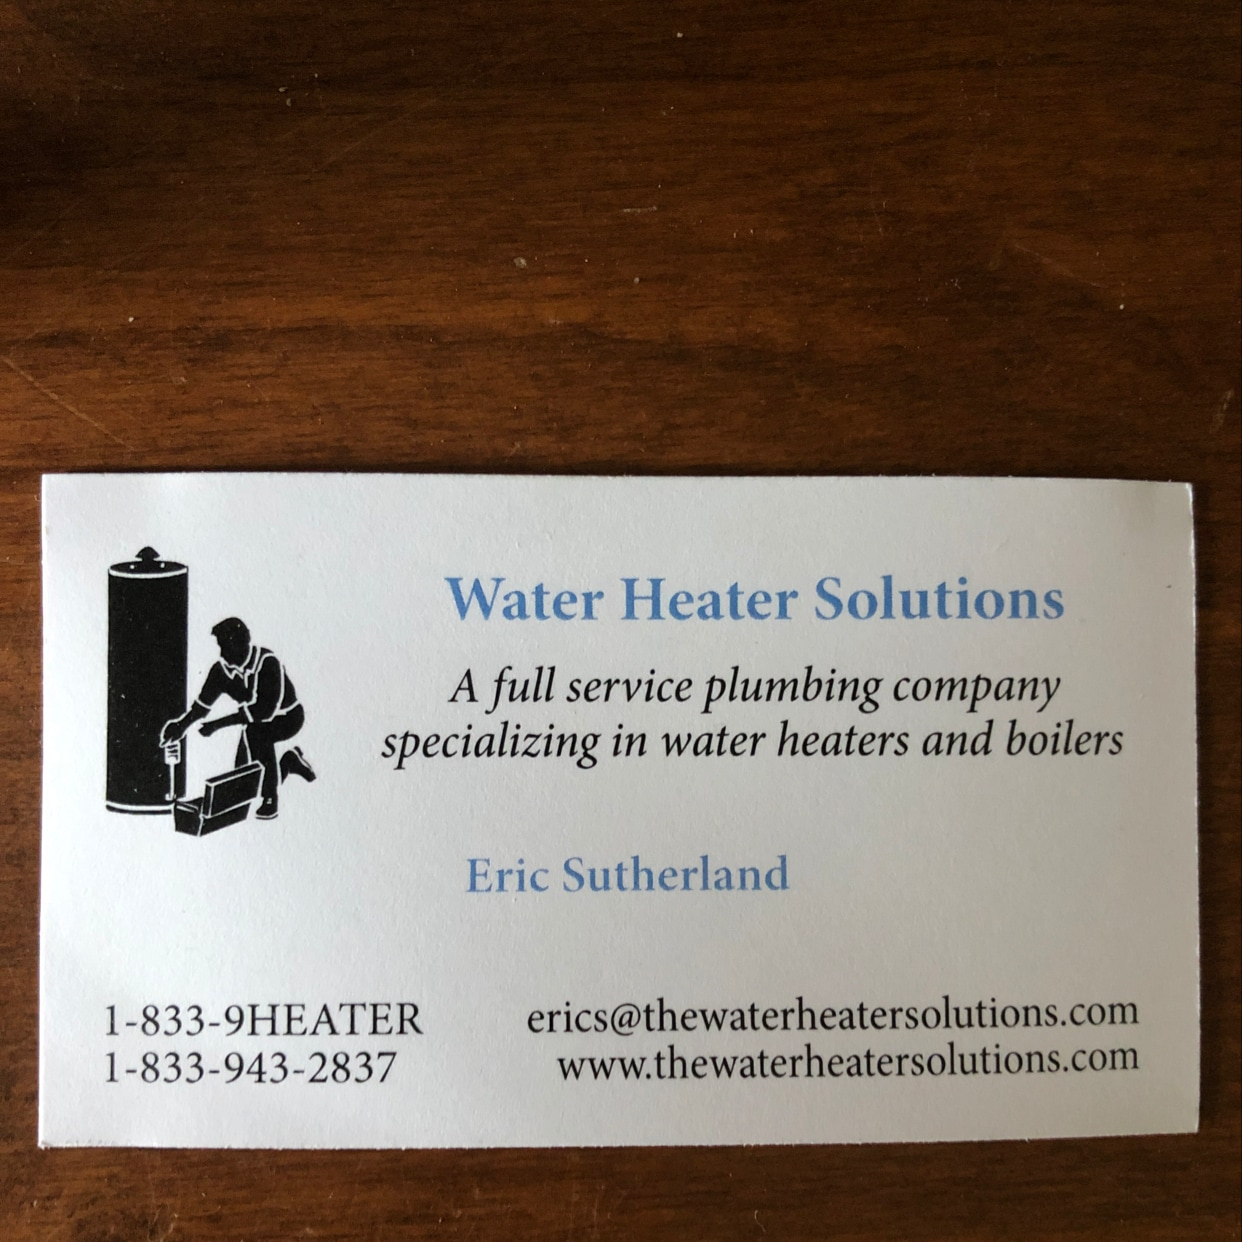 Water Heater Solutions